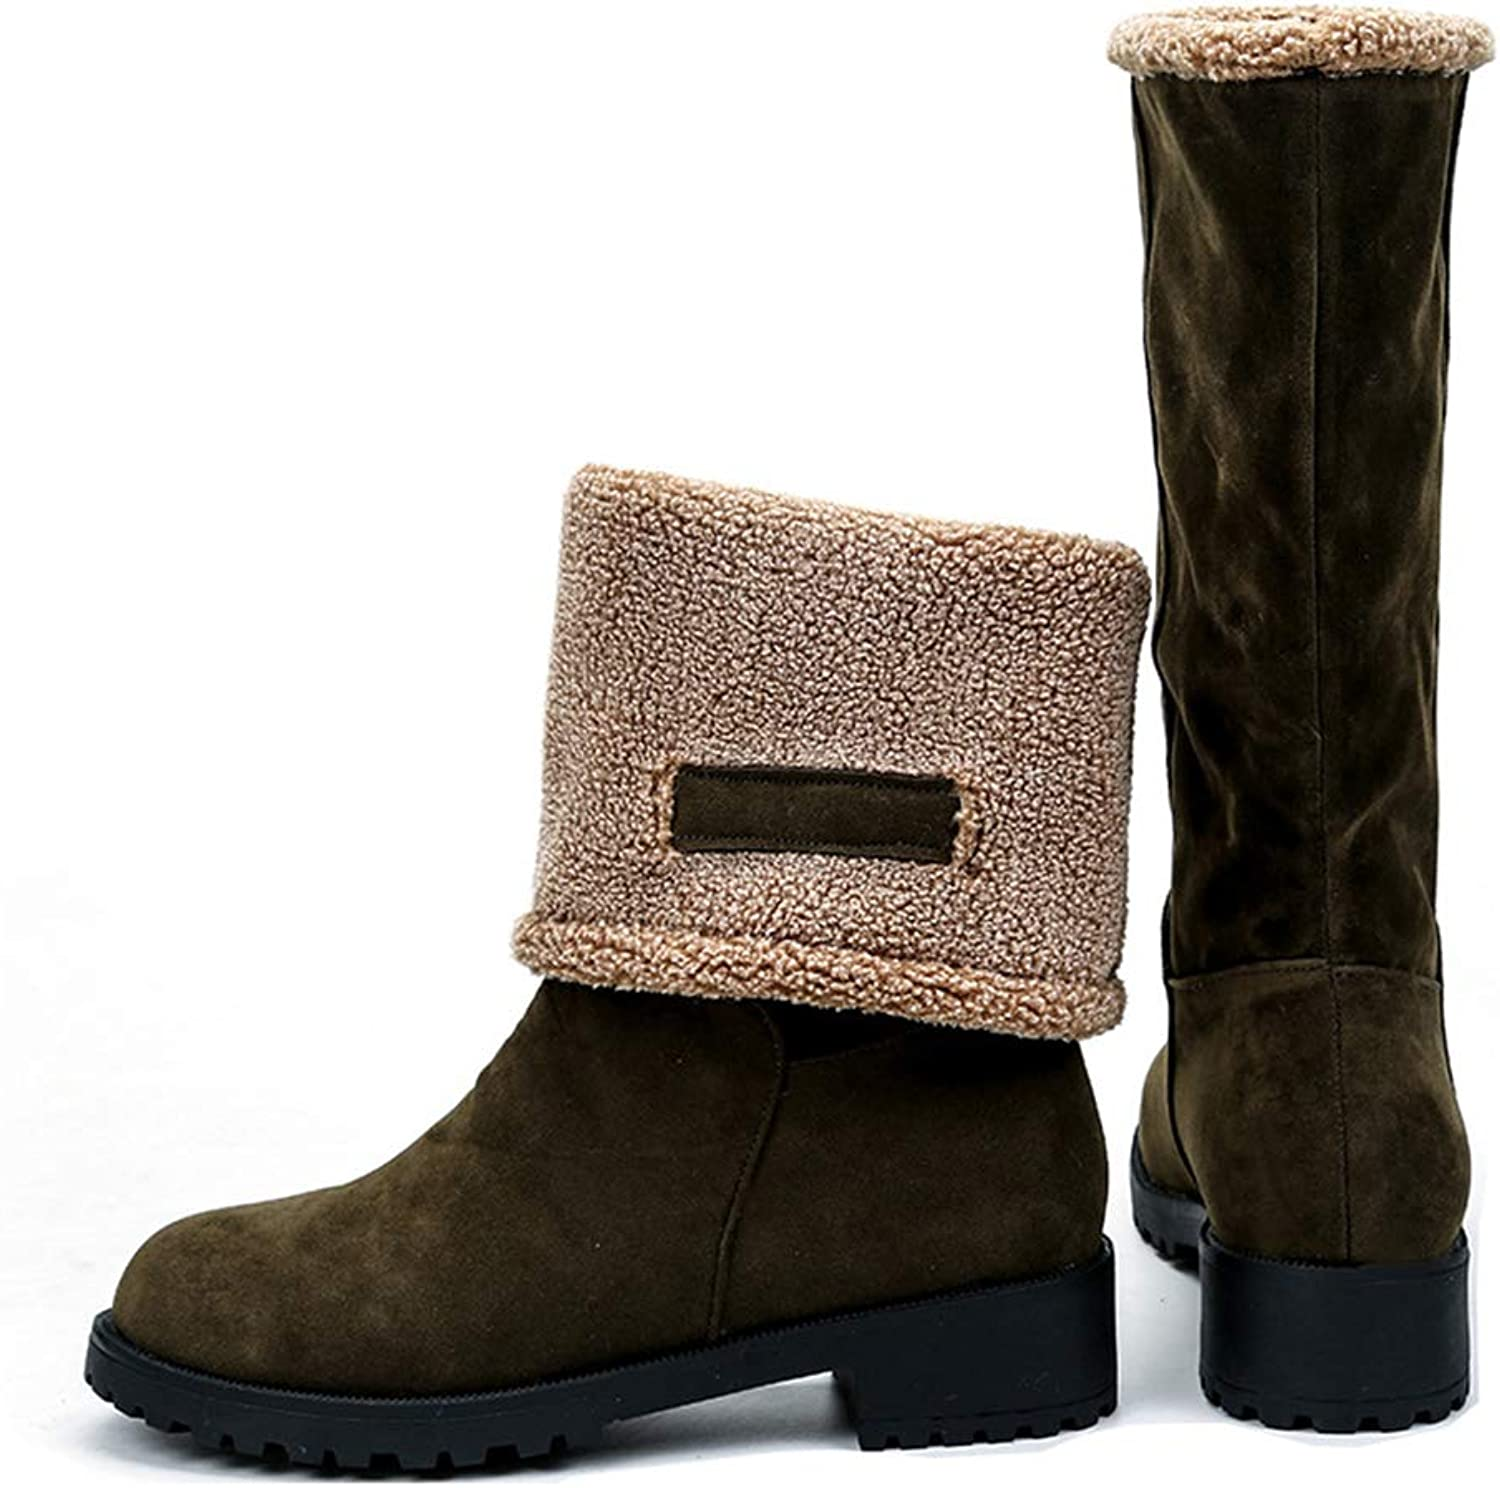 A-LING Women's Cotton Boots Casual Sleeve Booties Slip On Martin Boots